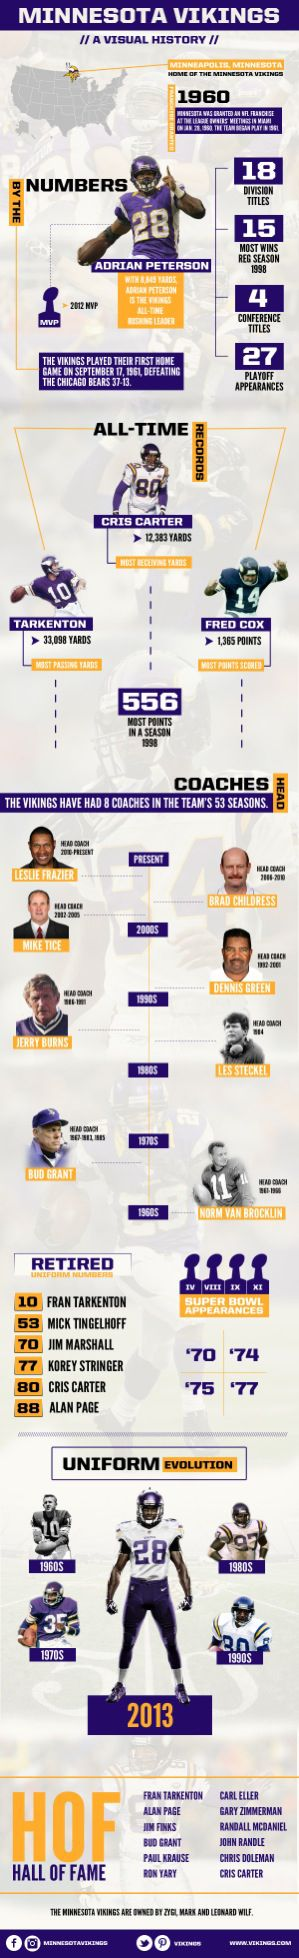 Infographic Outlining The Minnesota Vikings' History